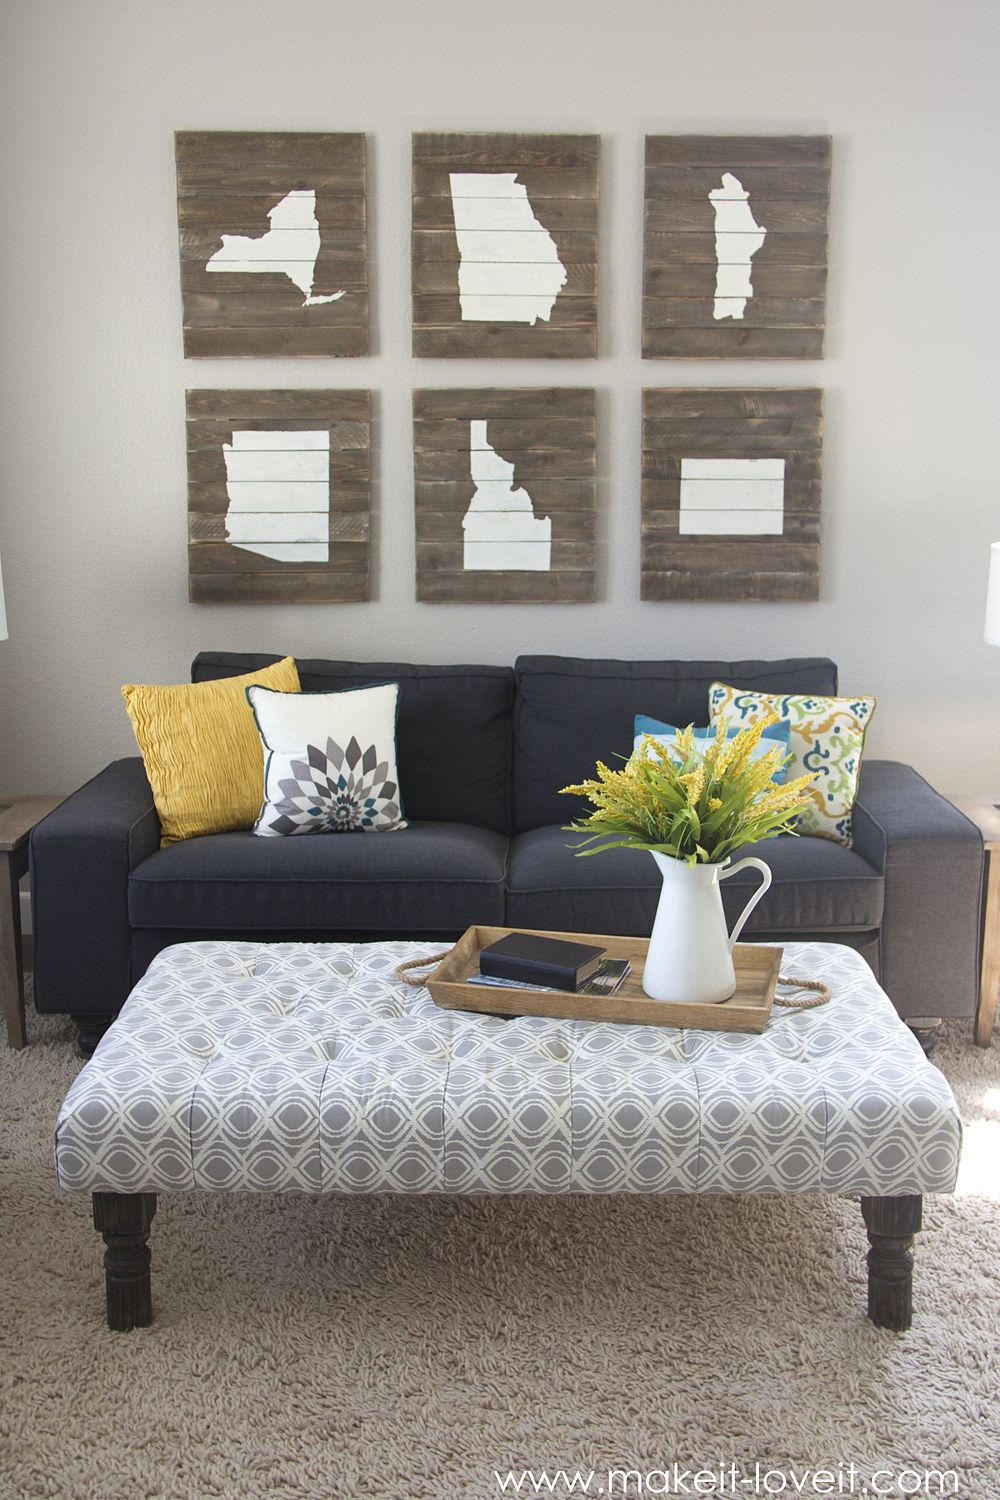 DIY Tufted Ottoman.....from An Old Kithen Table (or Coffee